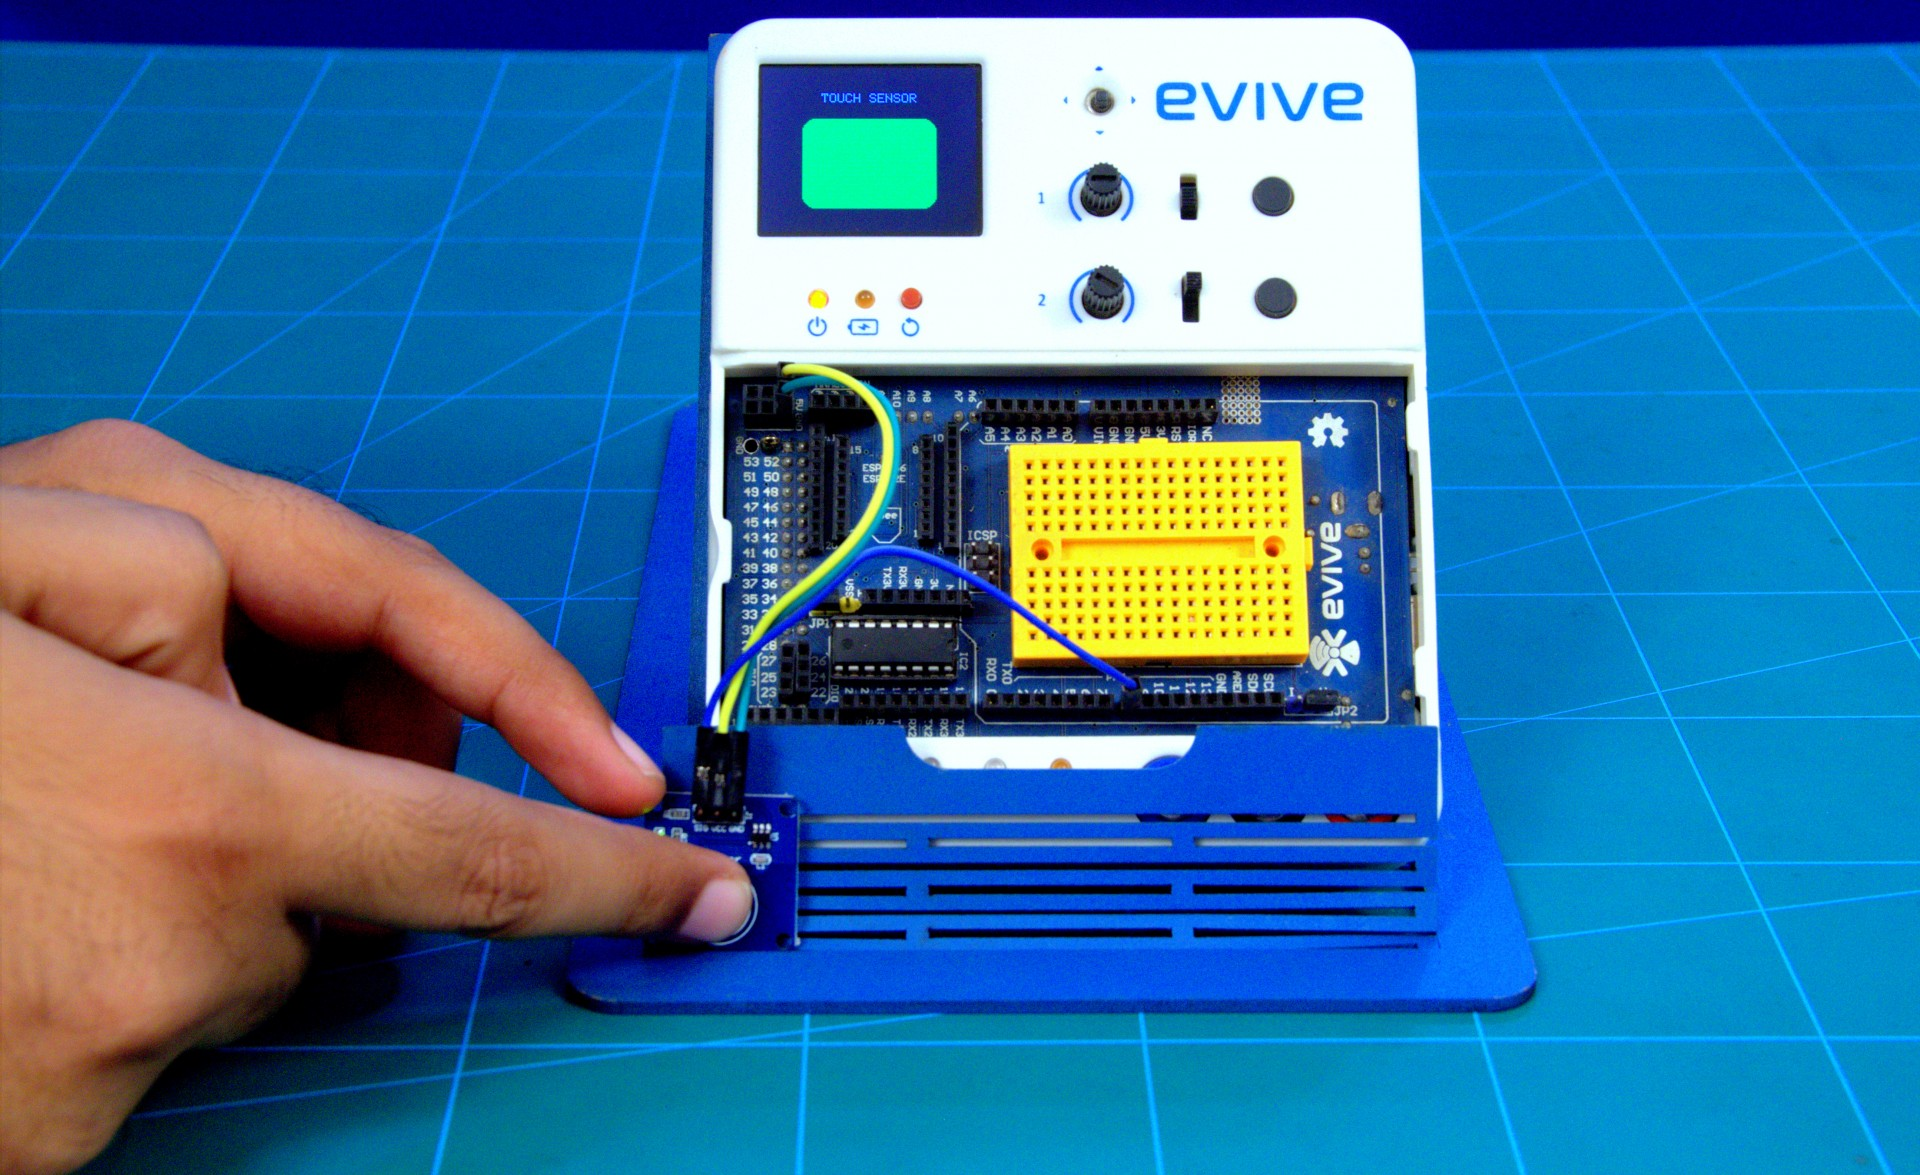 Interfacing Digital Capacitive Touch Switch Module With Evive About Sensor Circuit Arduino Code